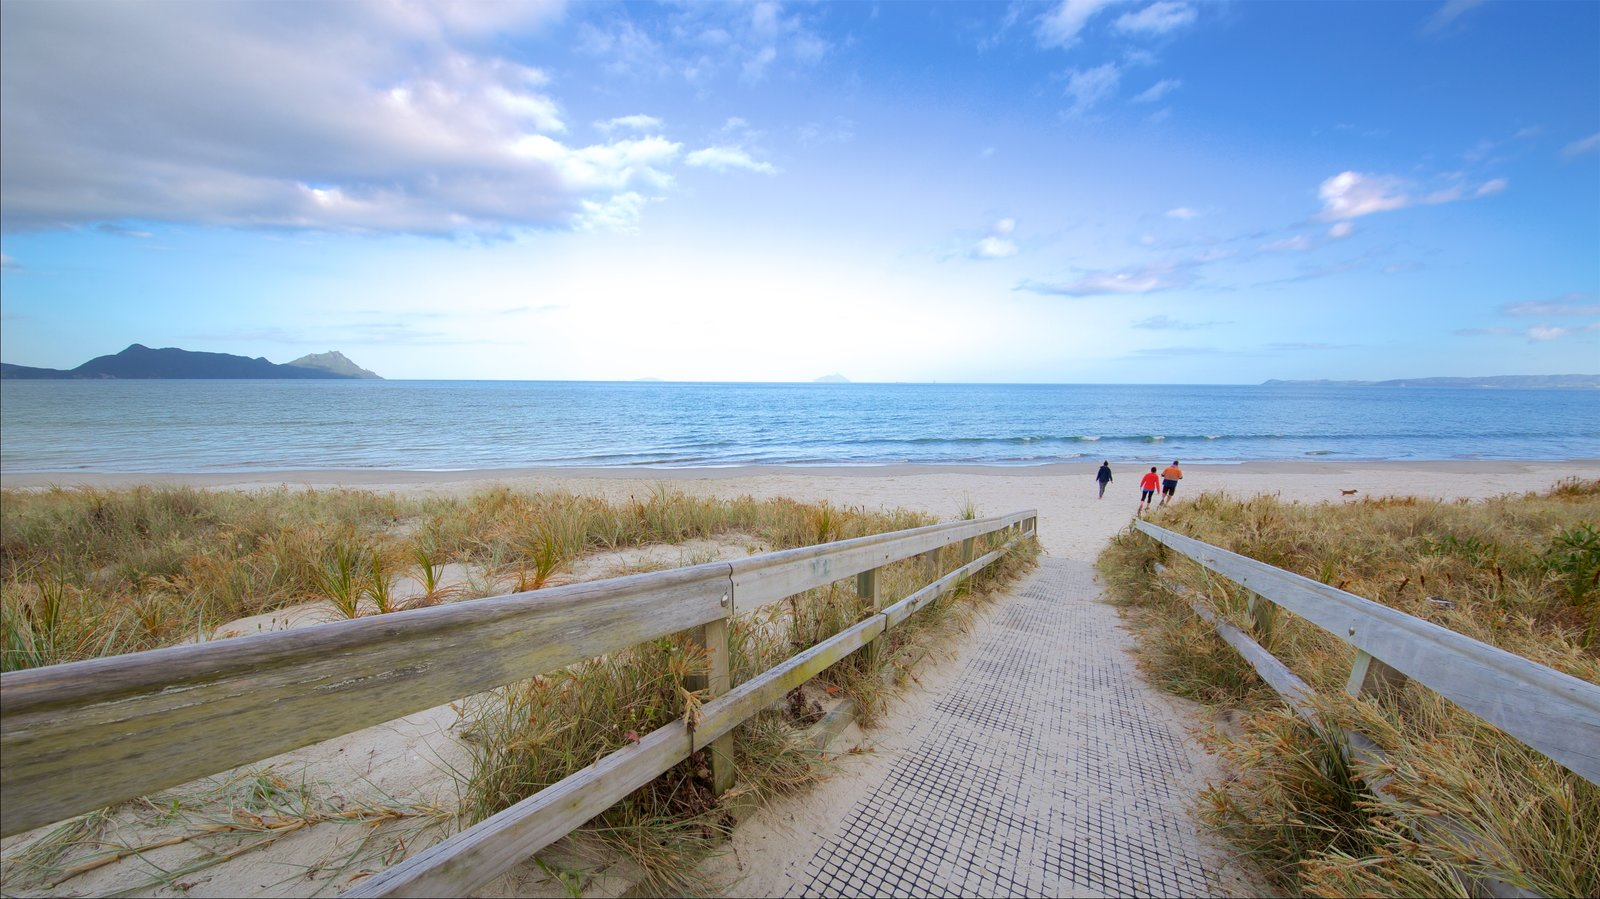 Whangarei Heads which includes general coastal views and a sandy beach as well as a small group of people